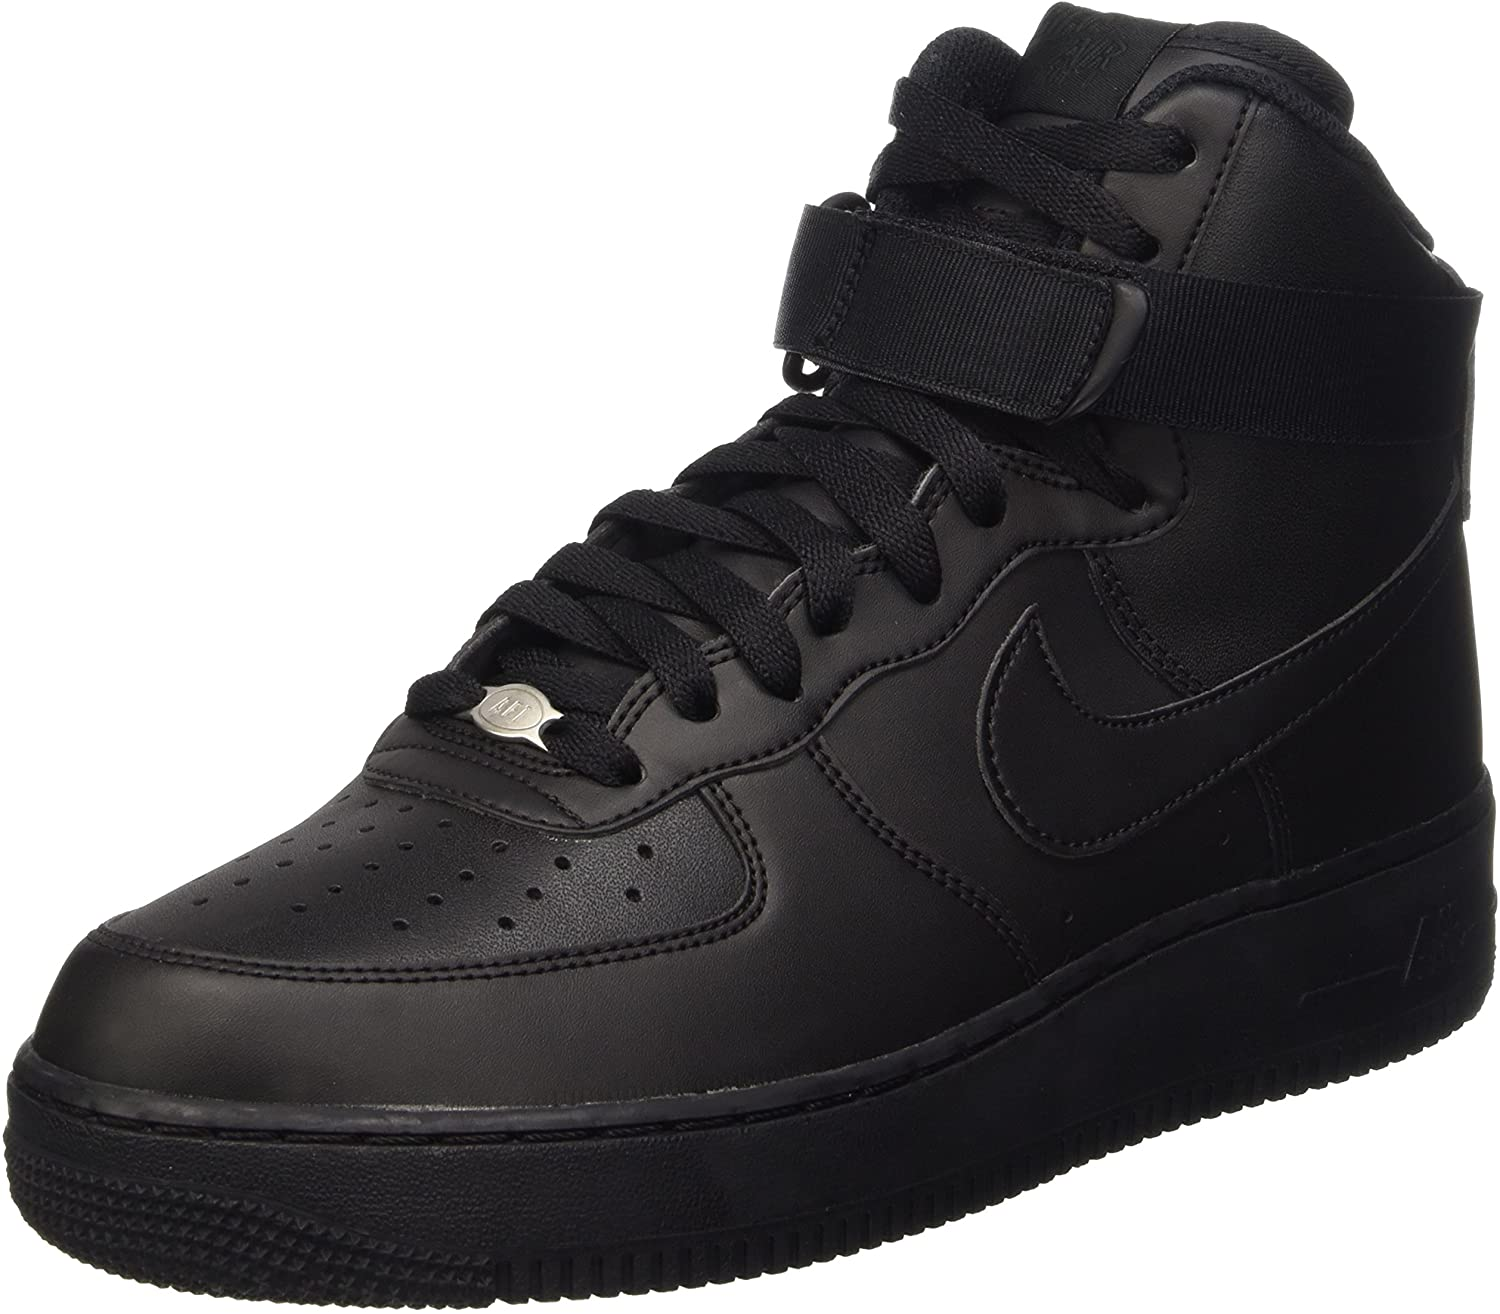 Nike 315121-032 Men AIR Force 1 HIGH 07 Black/Black/Black